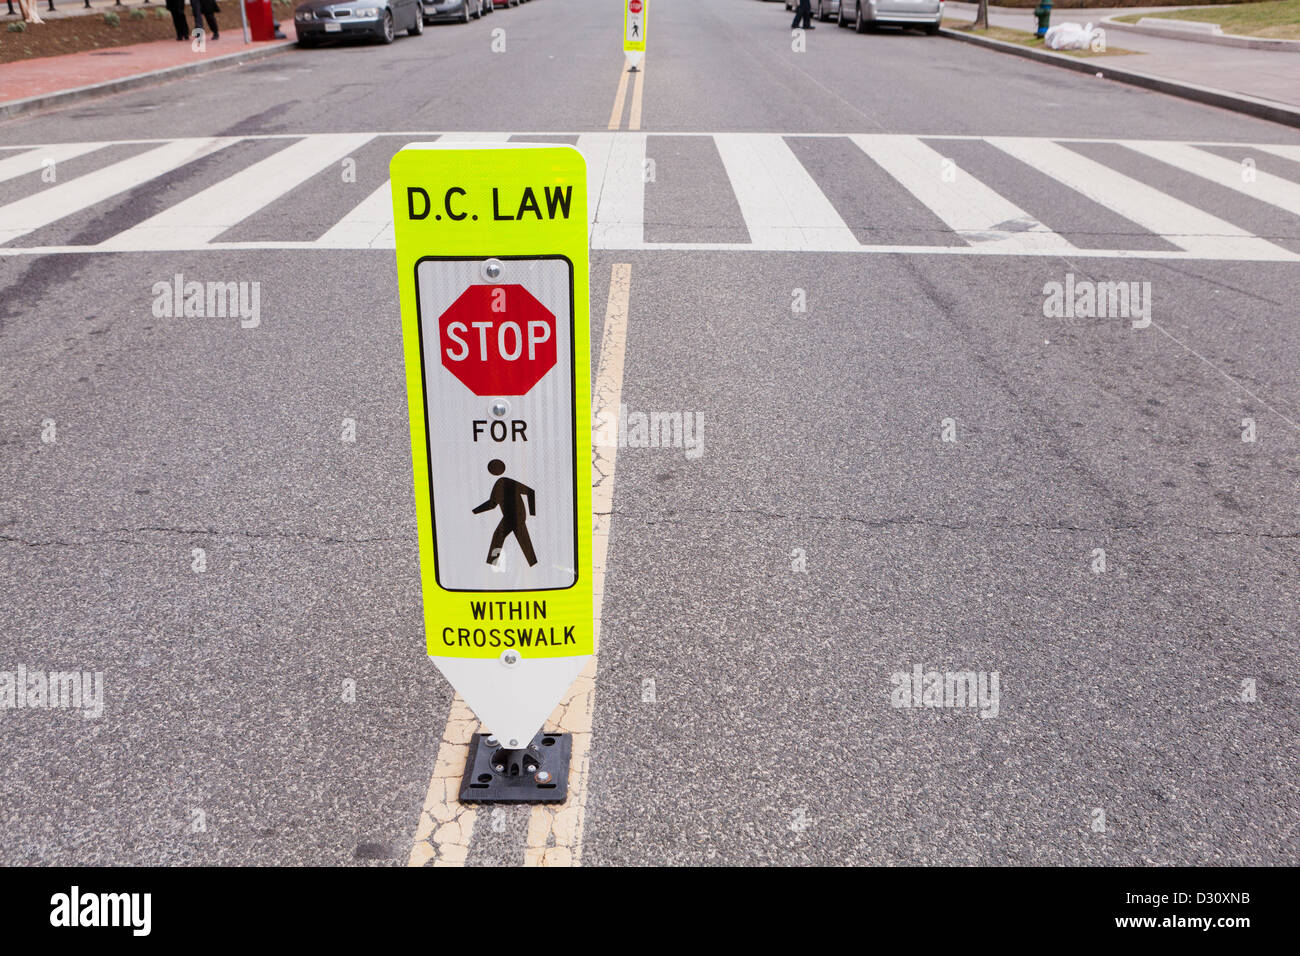 Crosswalk safety sign - Stock Image